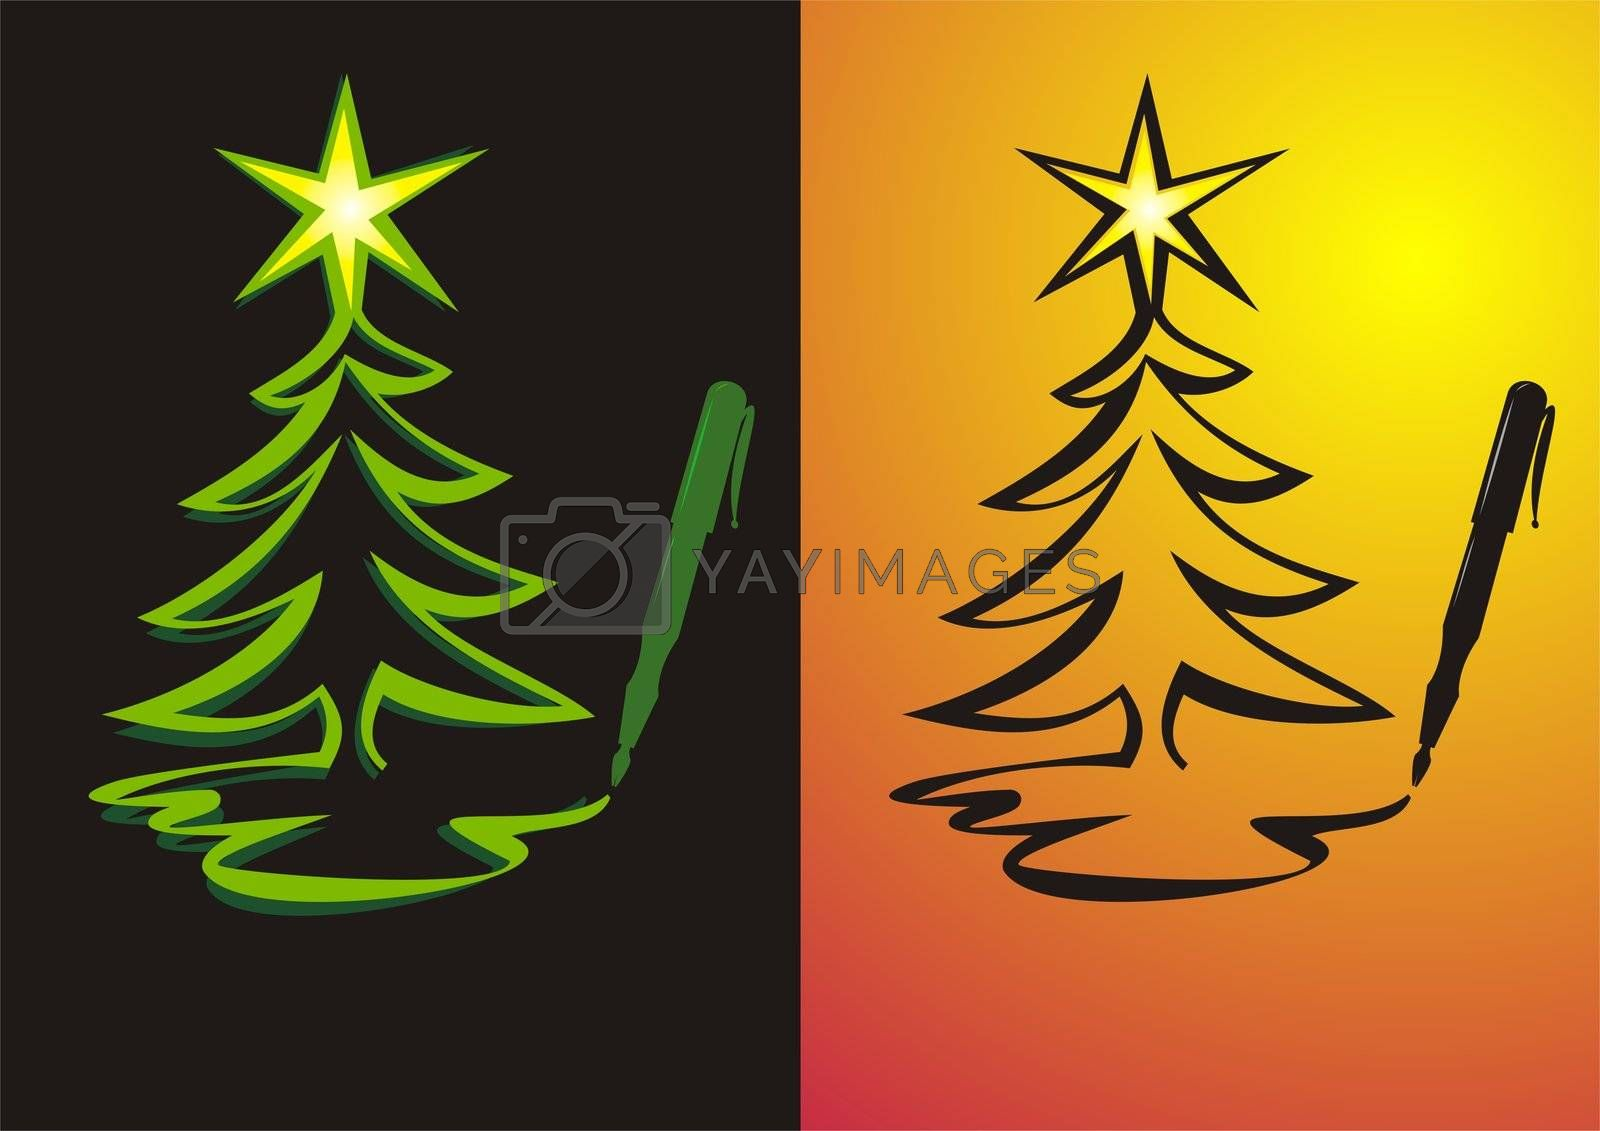 Illustration of a Christmas tree being painted as a symbol for writing Christmas letters